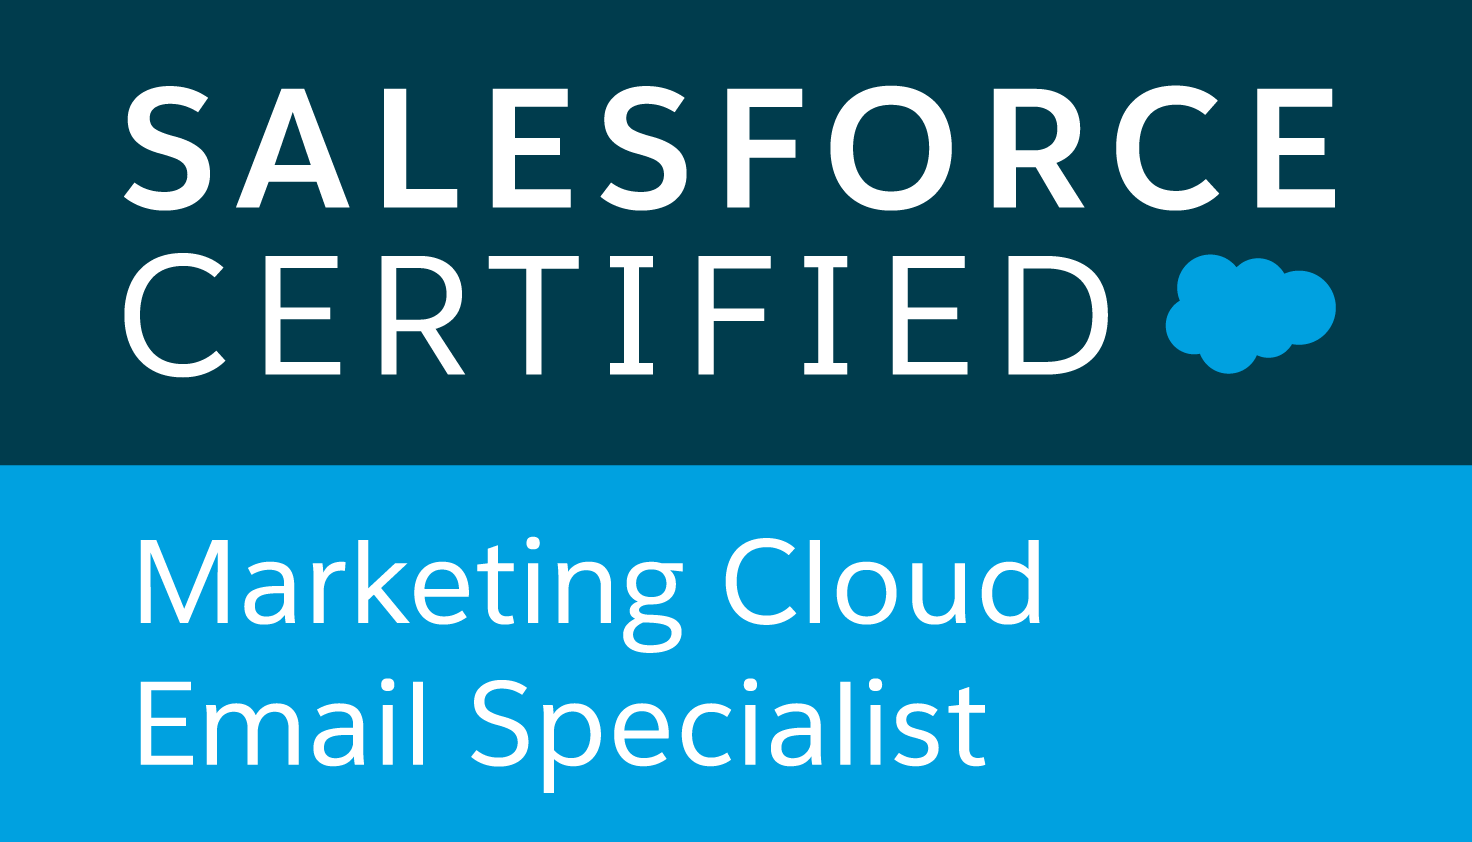 Market Cloud Email Specialist